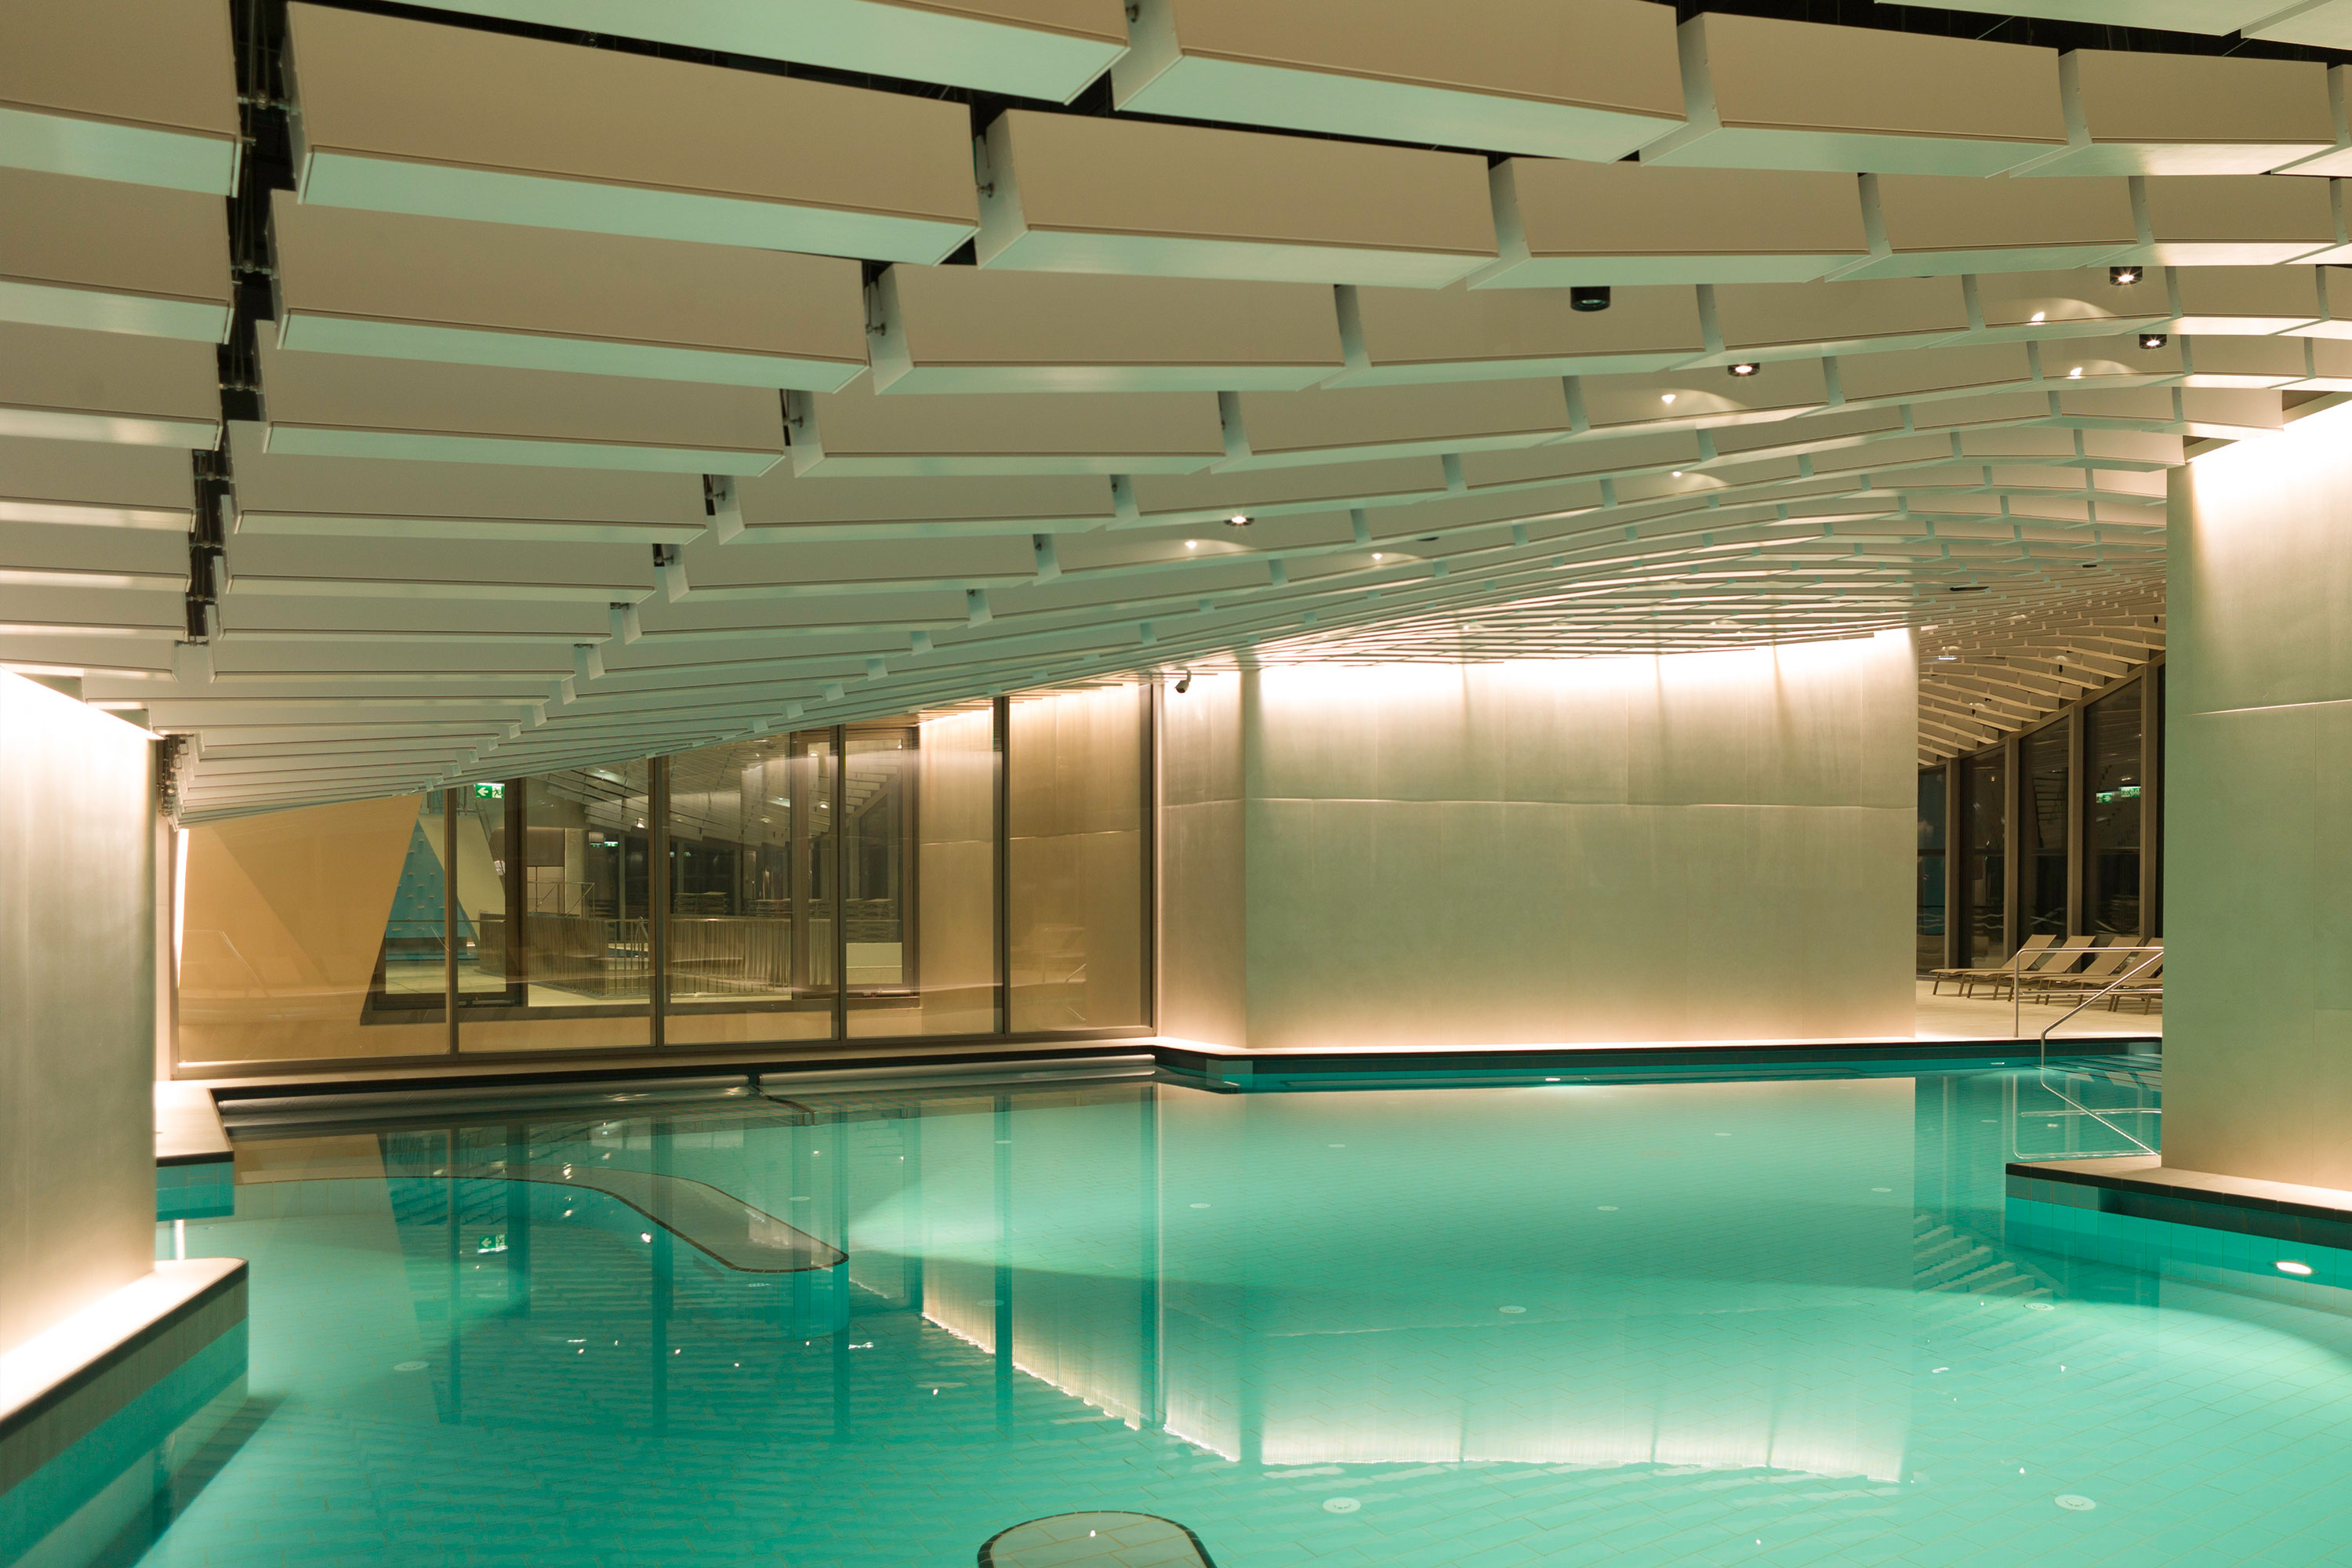 Paracelsus Bad & Kurhaus in Salzburg, family pool. Photo: Berger+Parkkinen Architekten